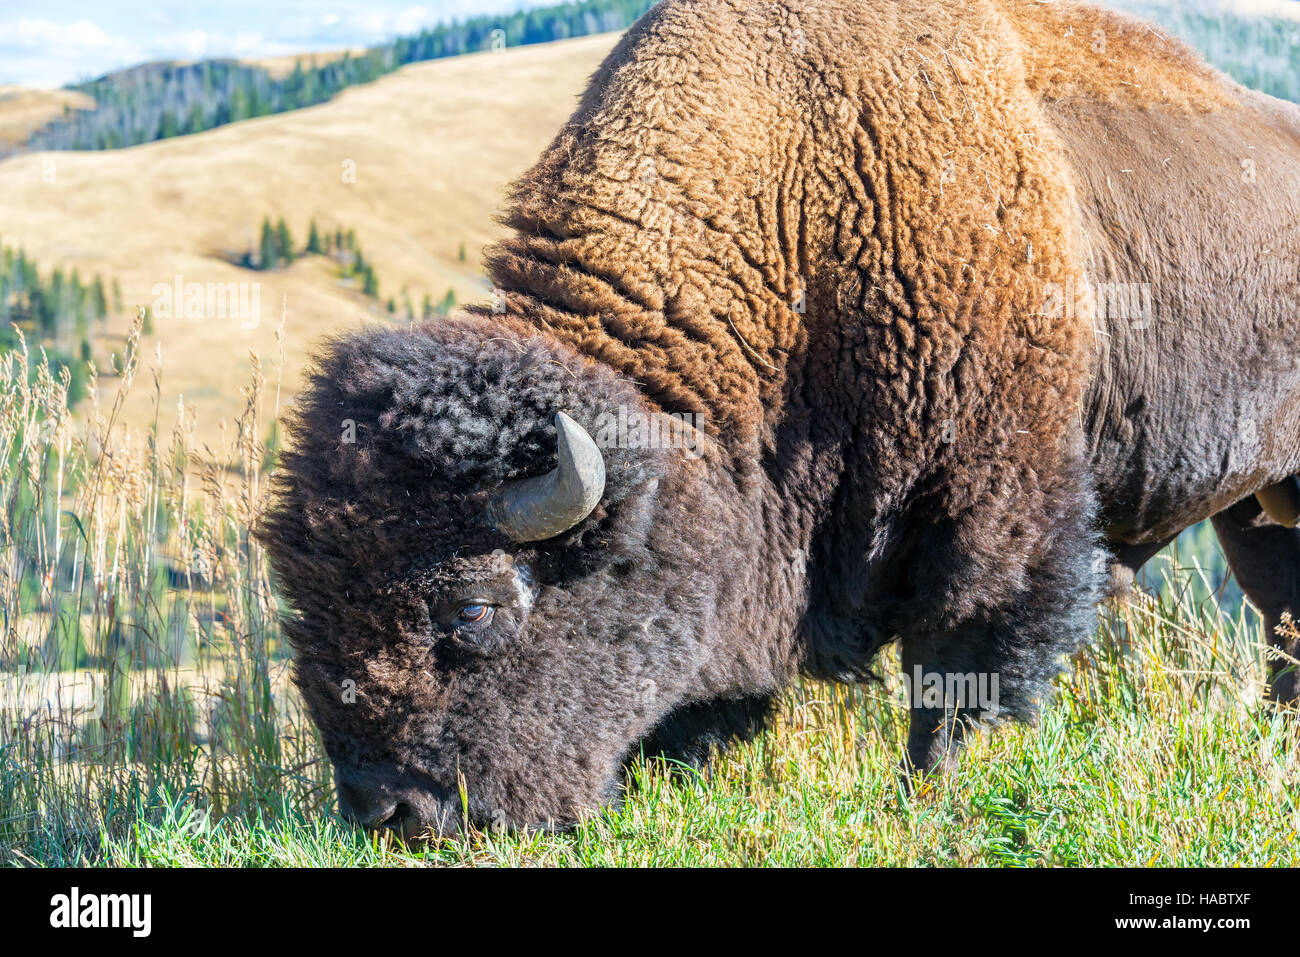 Closeup view of an American bison in Yellowstone National Park Stock Photo